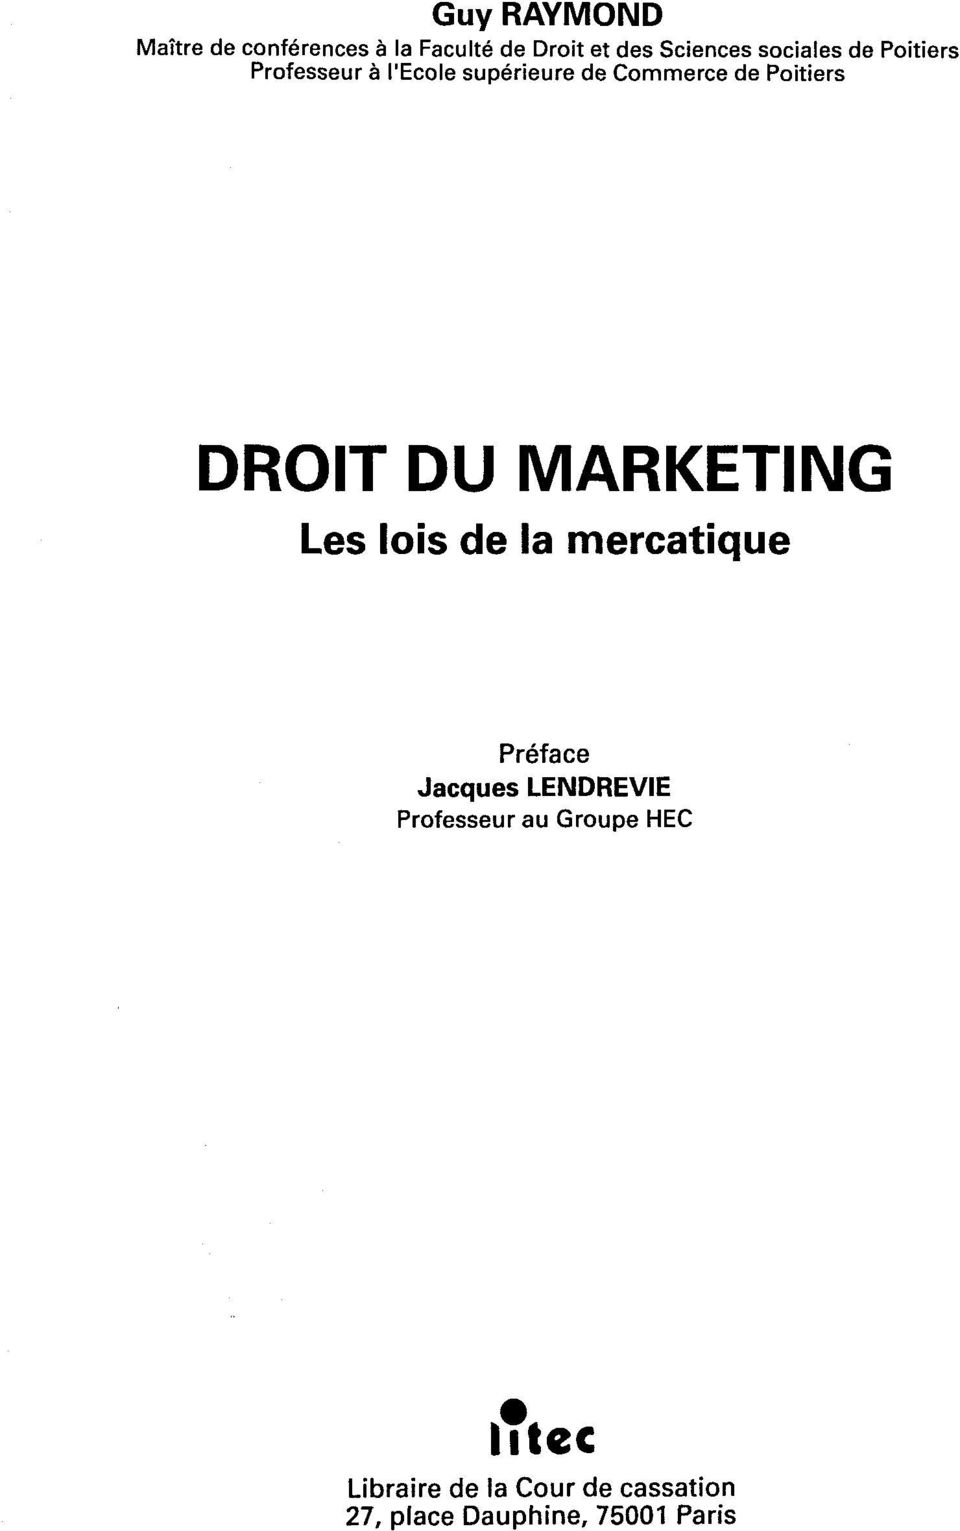 DROIT DU MARKETING Les lois de la mercatique Preface Jacques LENDREVIE